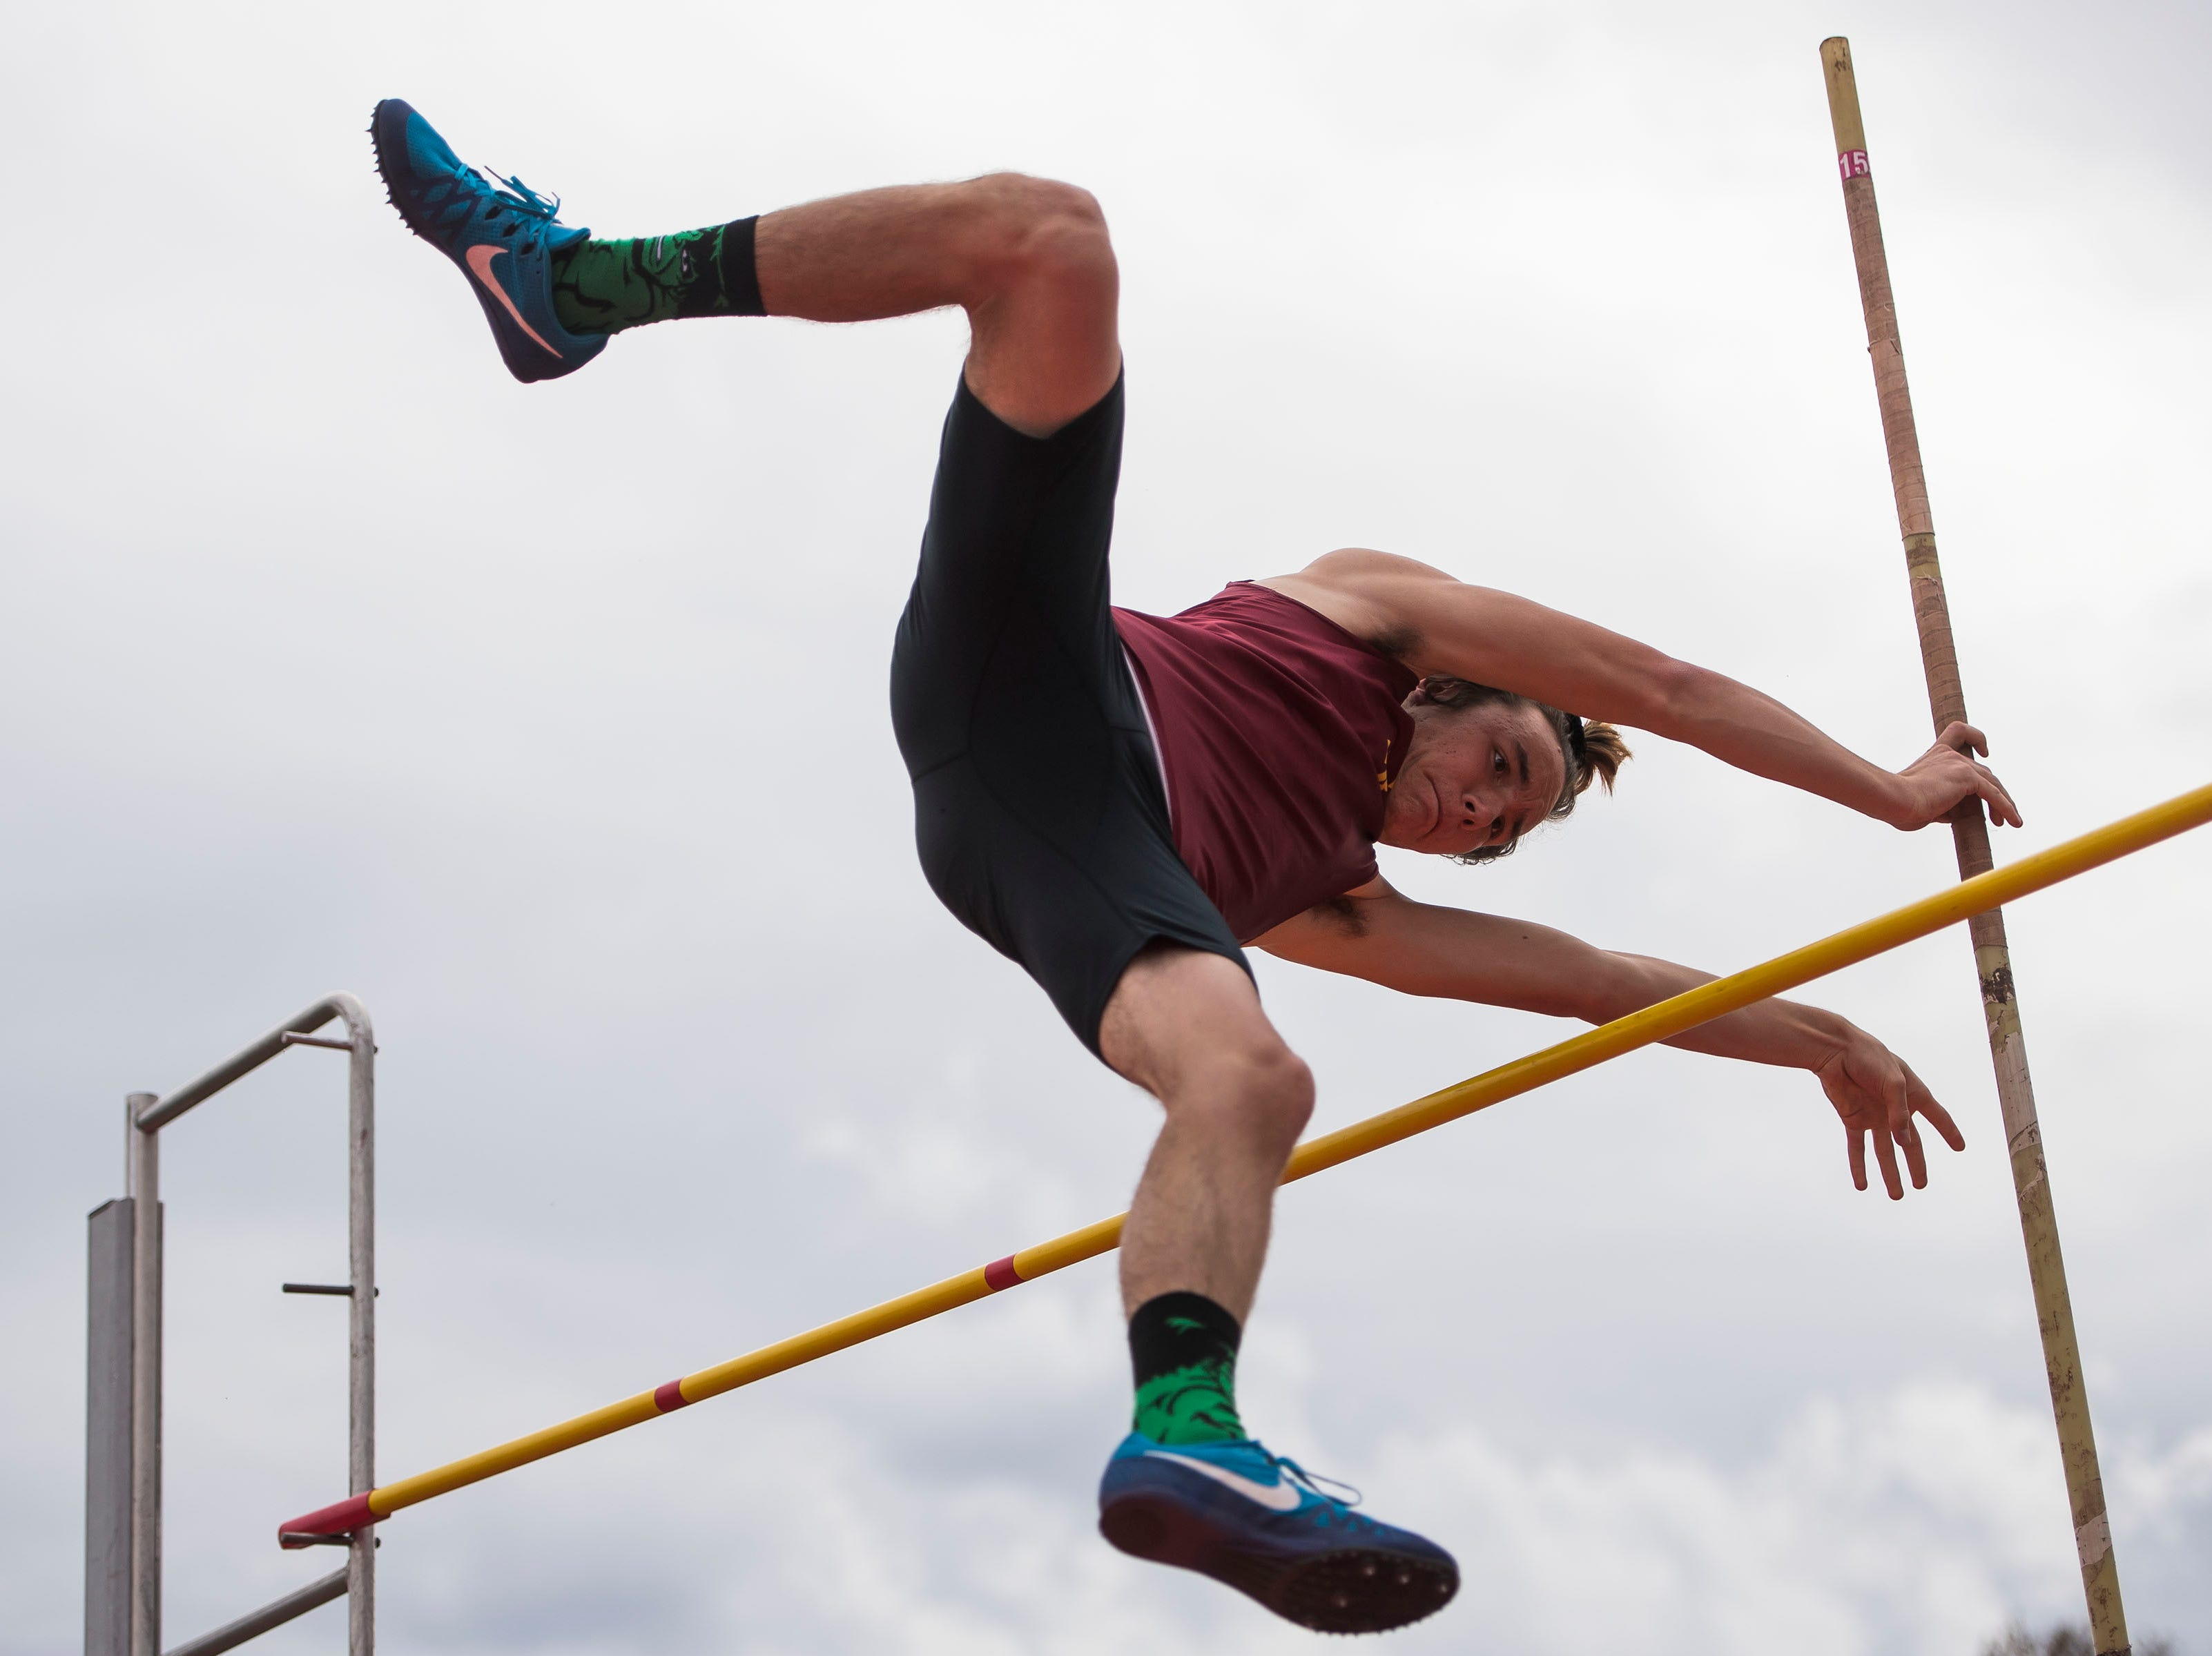 Rocky Mountain's Bridger Fry competes in the boys pole vault during the Randy Yaussi City Track Championships on Tuesday, April 9, 2019, at French Field in Fort Collins, Colo.